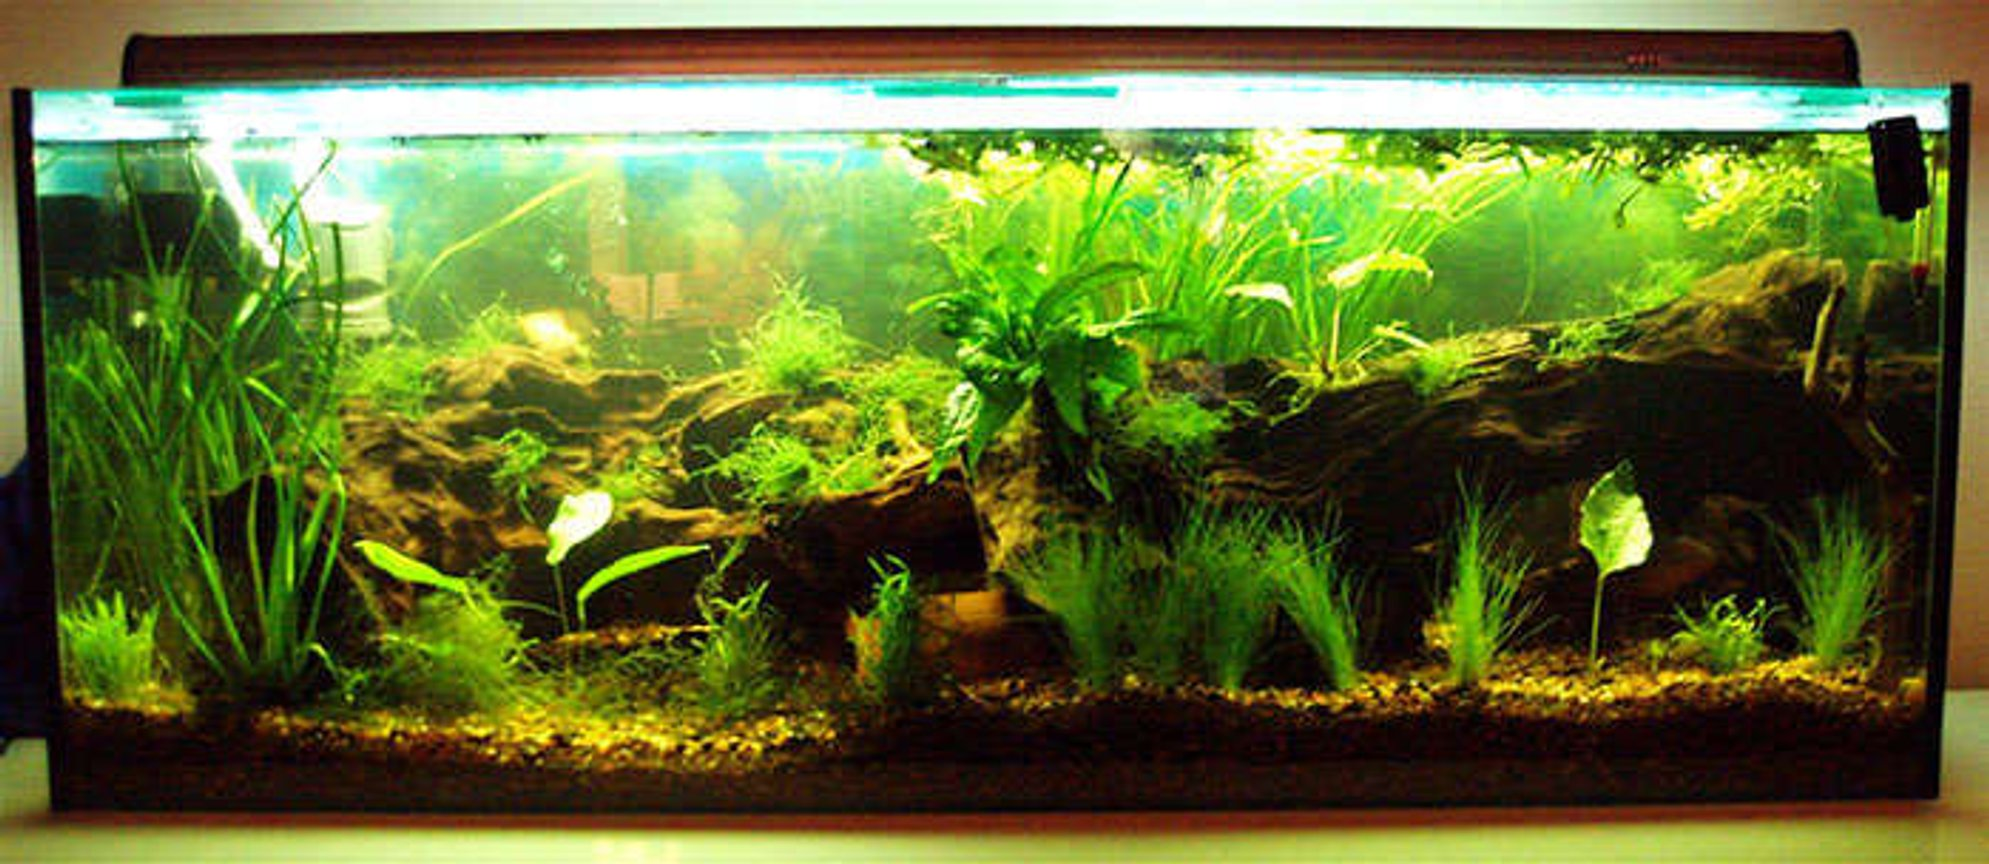 50 gallons planted tank (mostly live plants and fish) - Early Design-2007